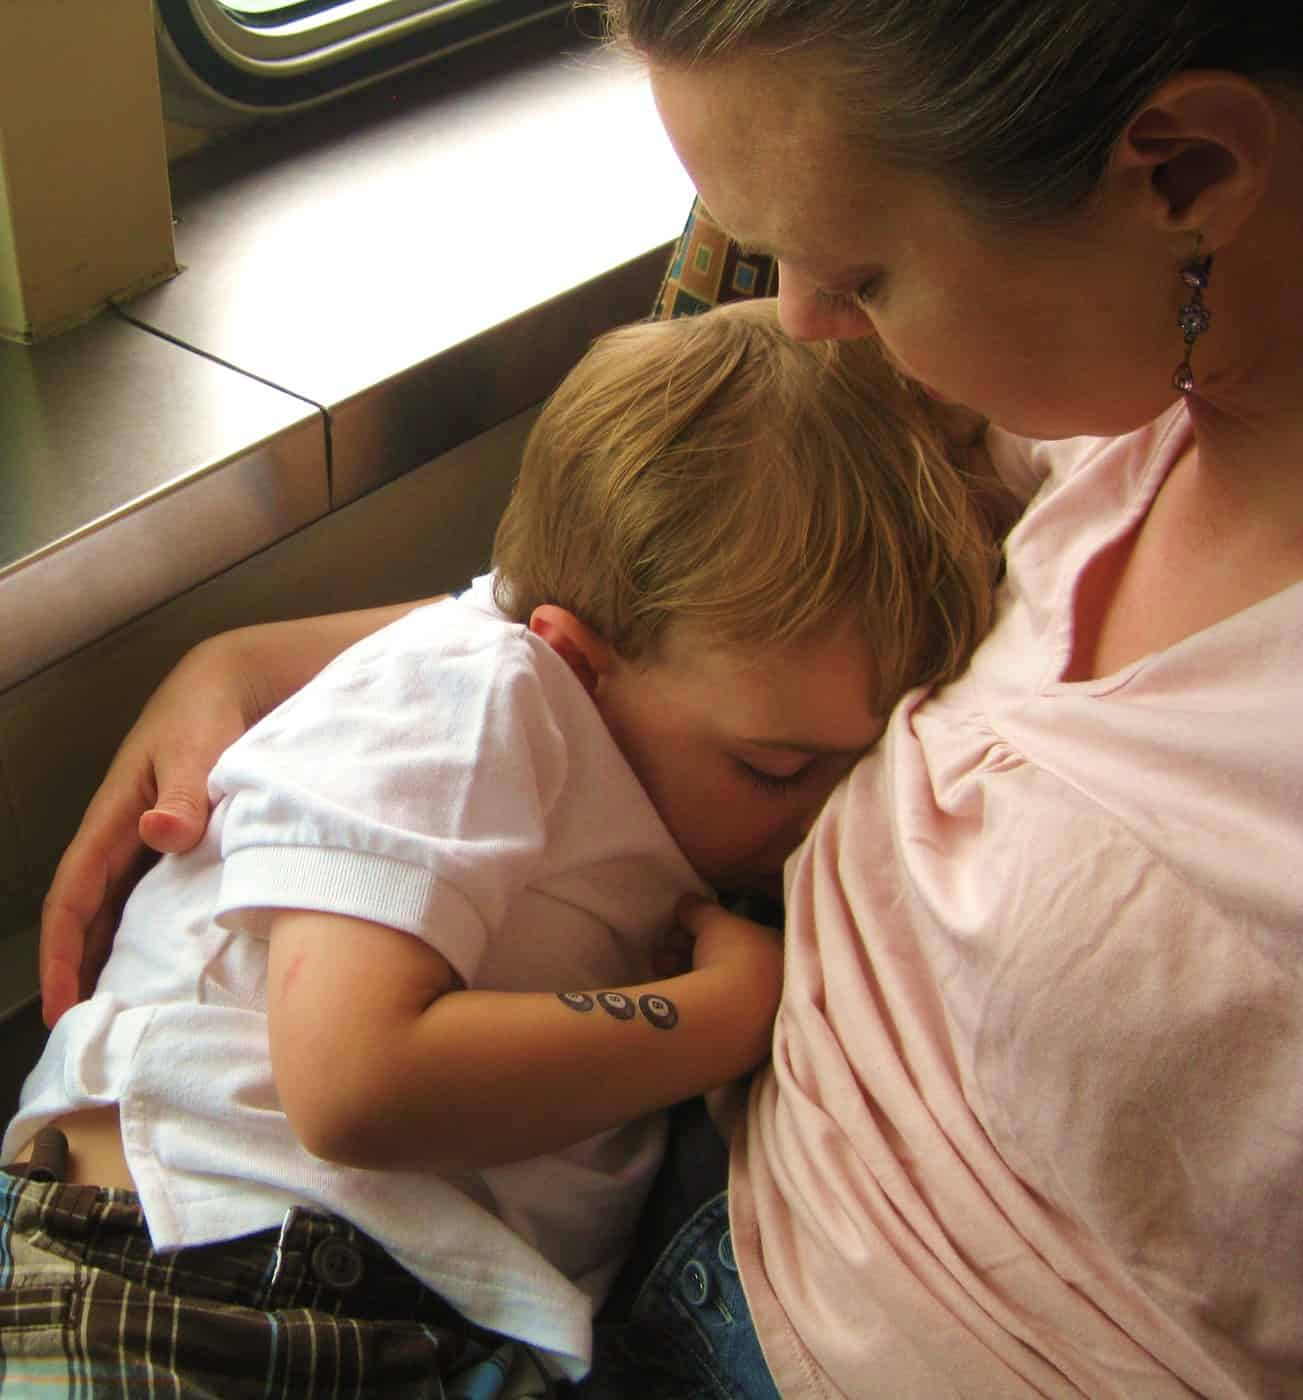 Attachment Parenting Isn't Martyrdom, It's About Following Your Instincts